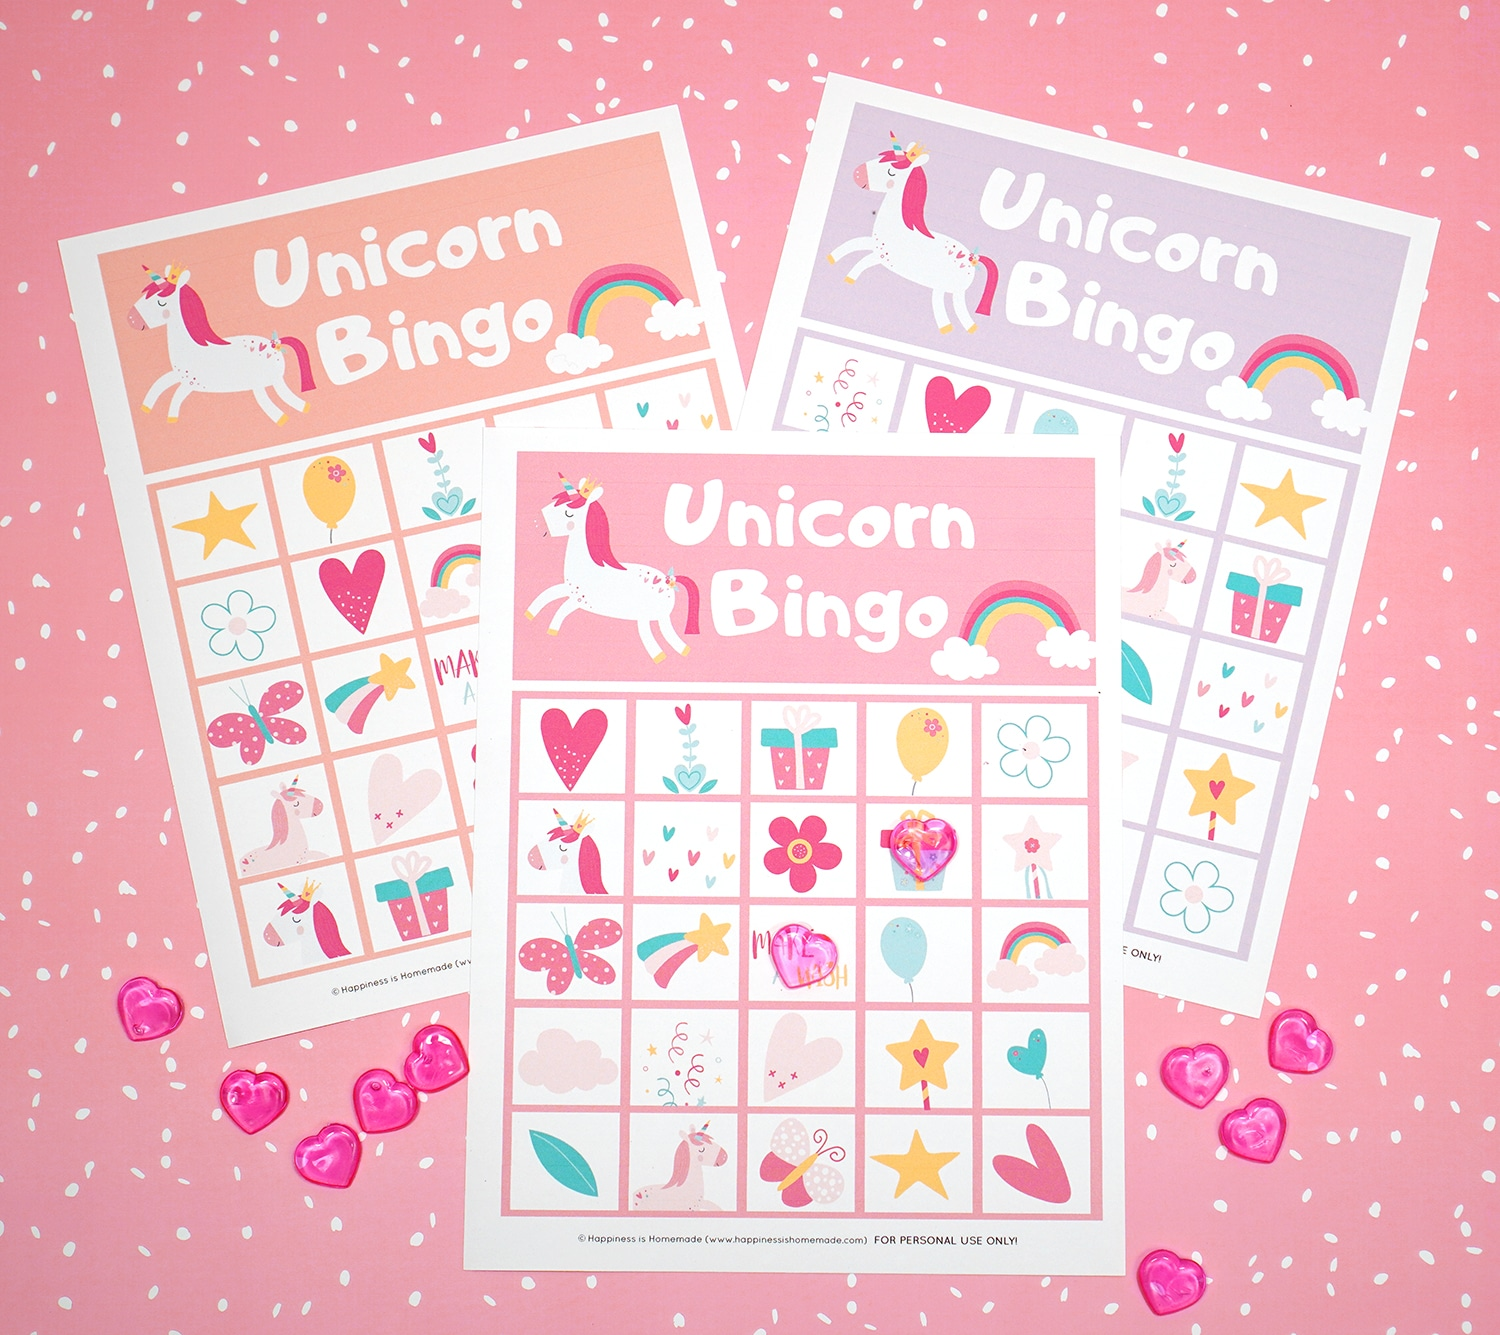 Printable Unicorn Bingo Game Cards on pink background with pink heart markers